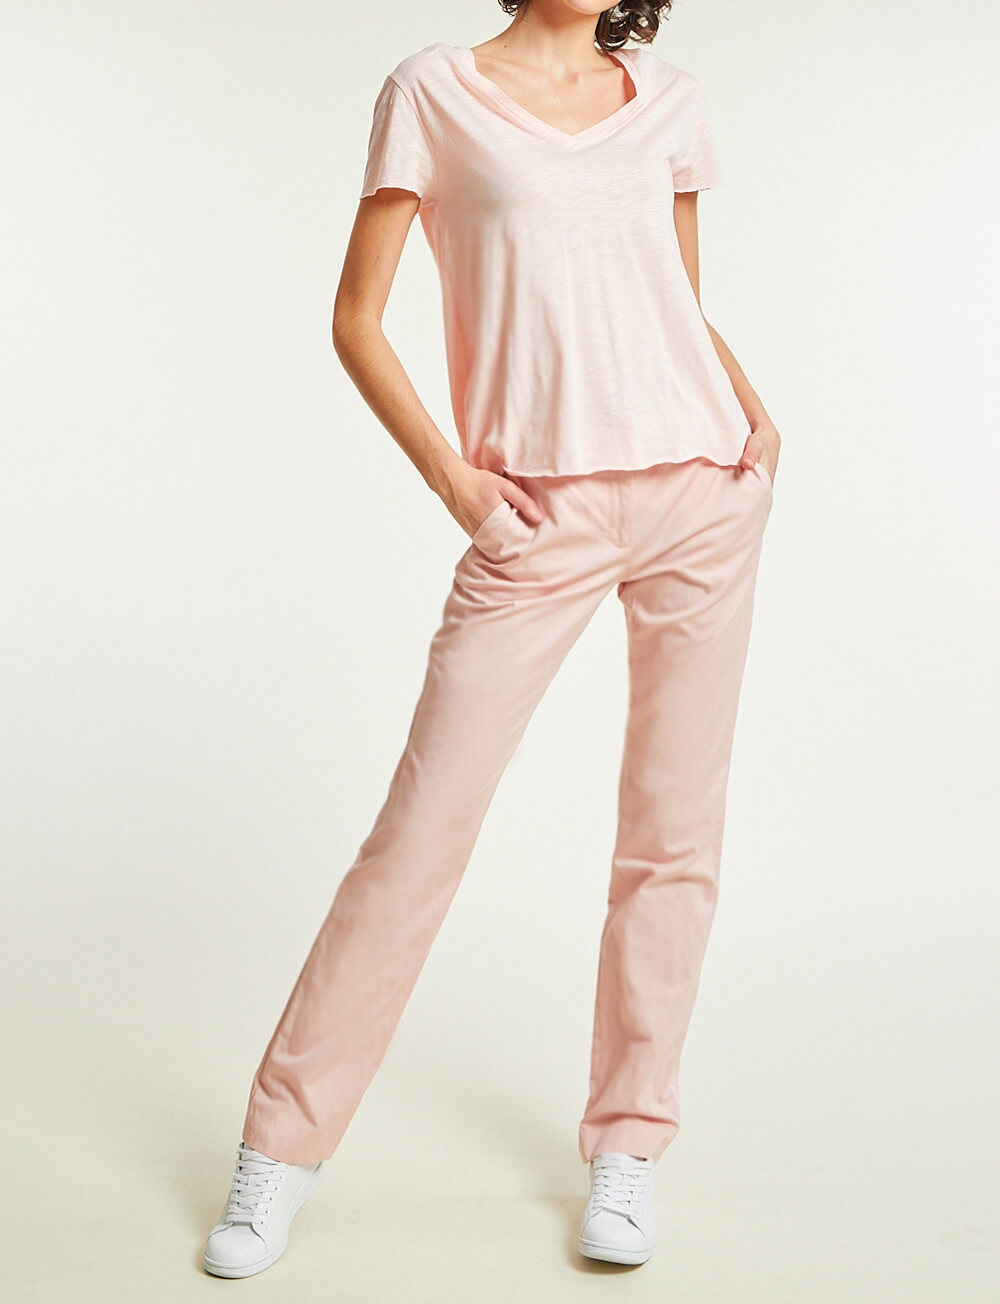 pantalon-anatole-rose-pale